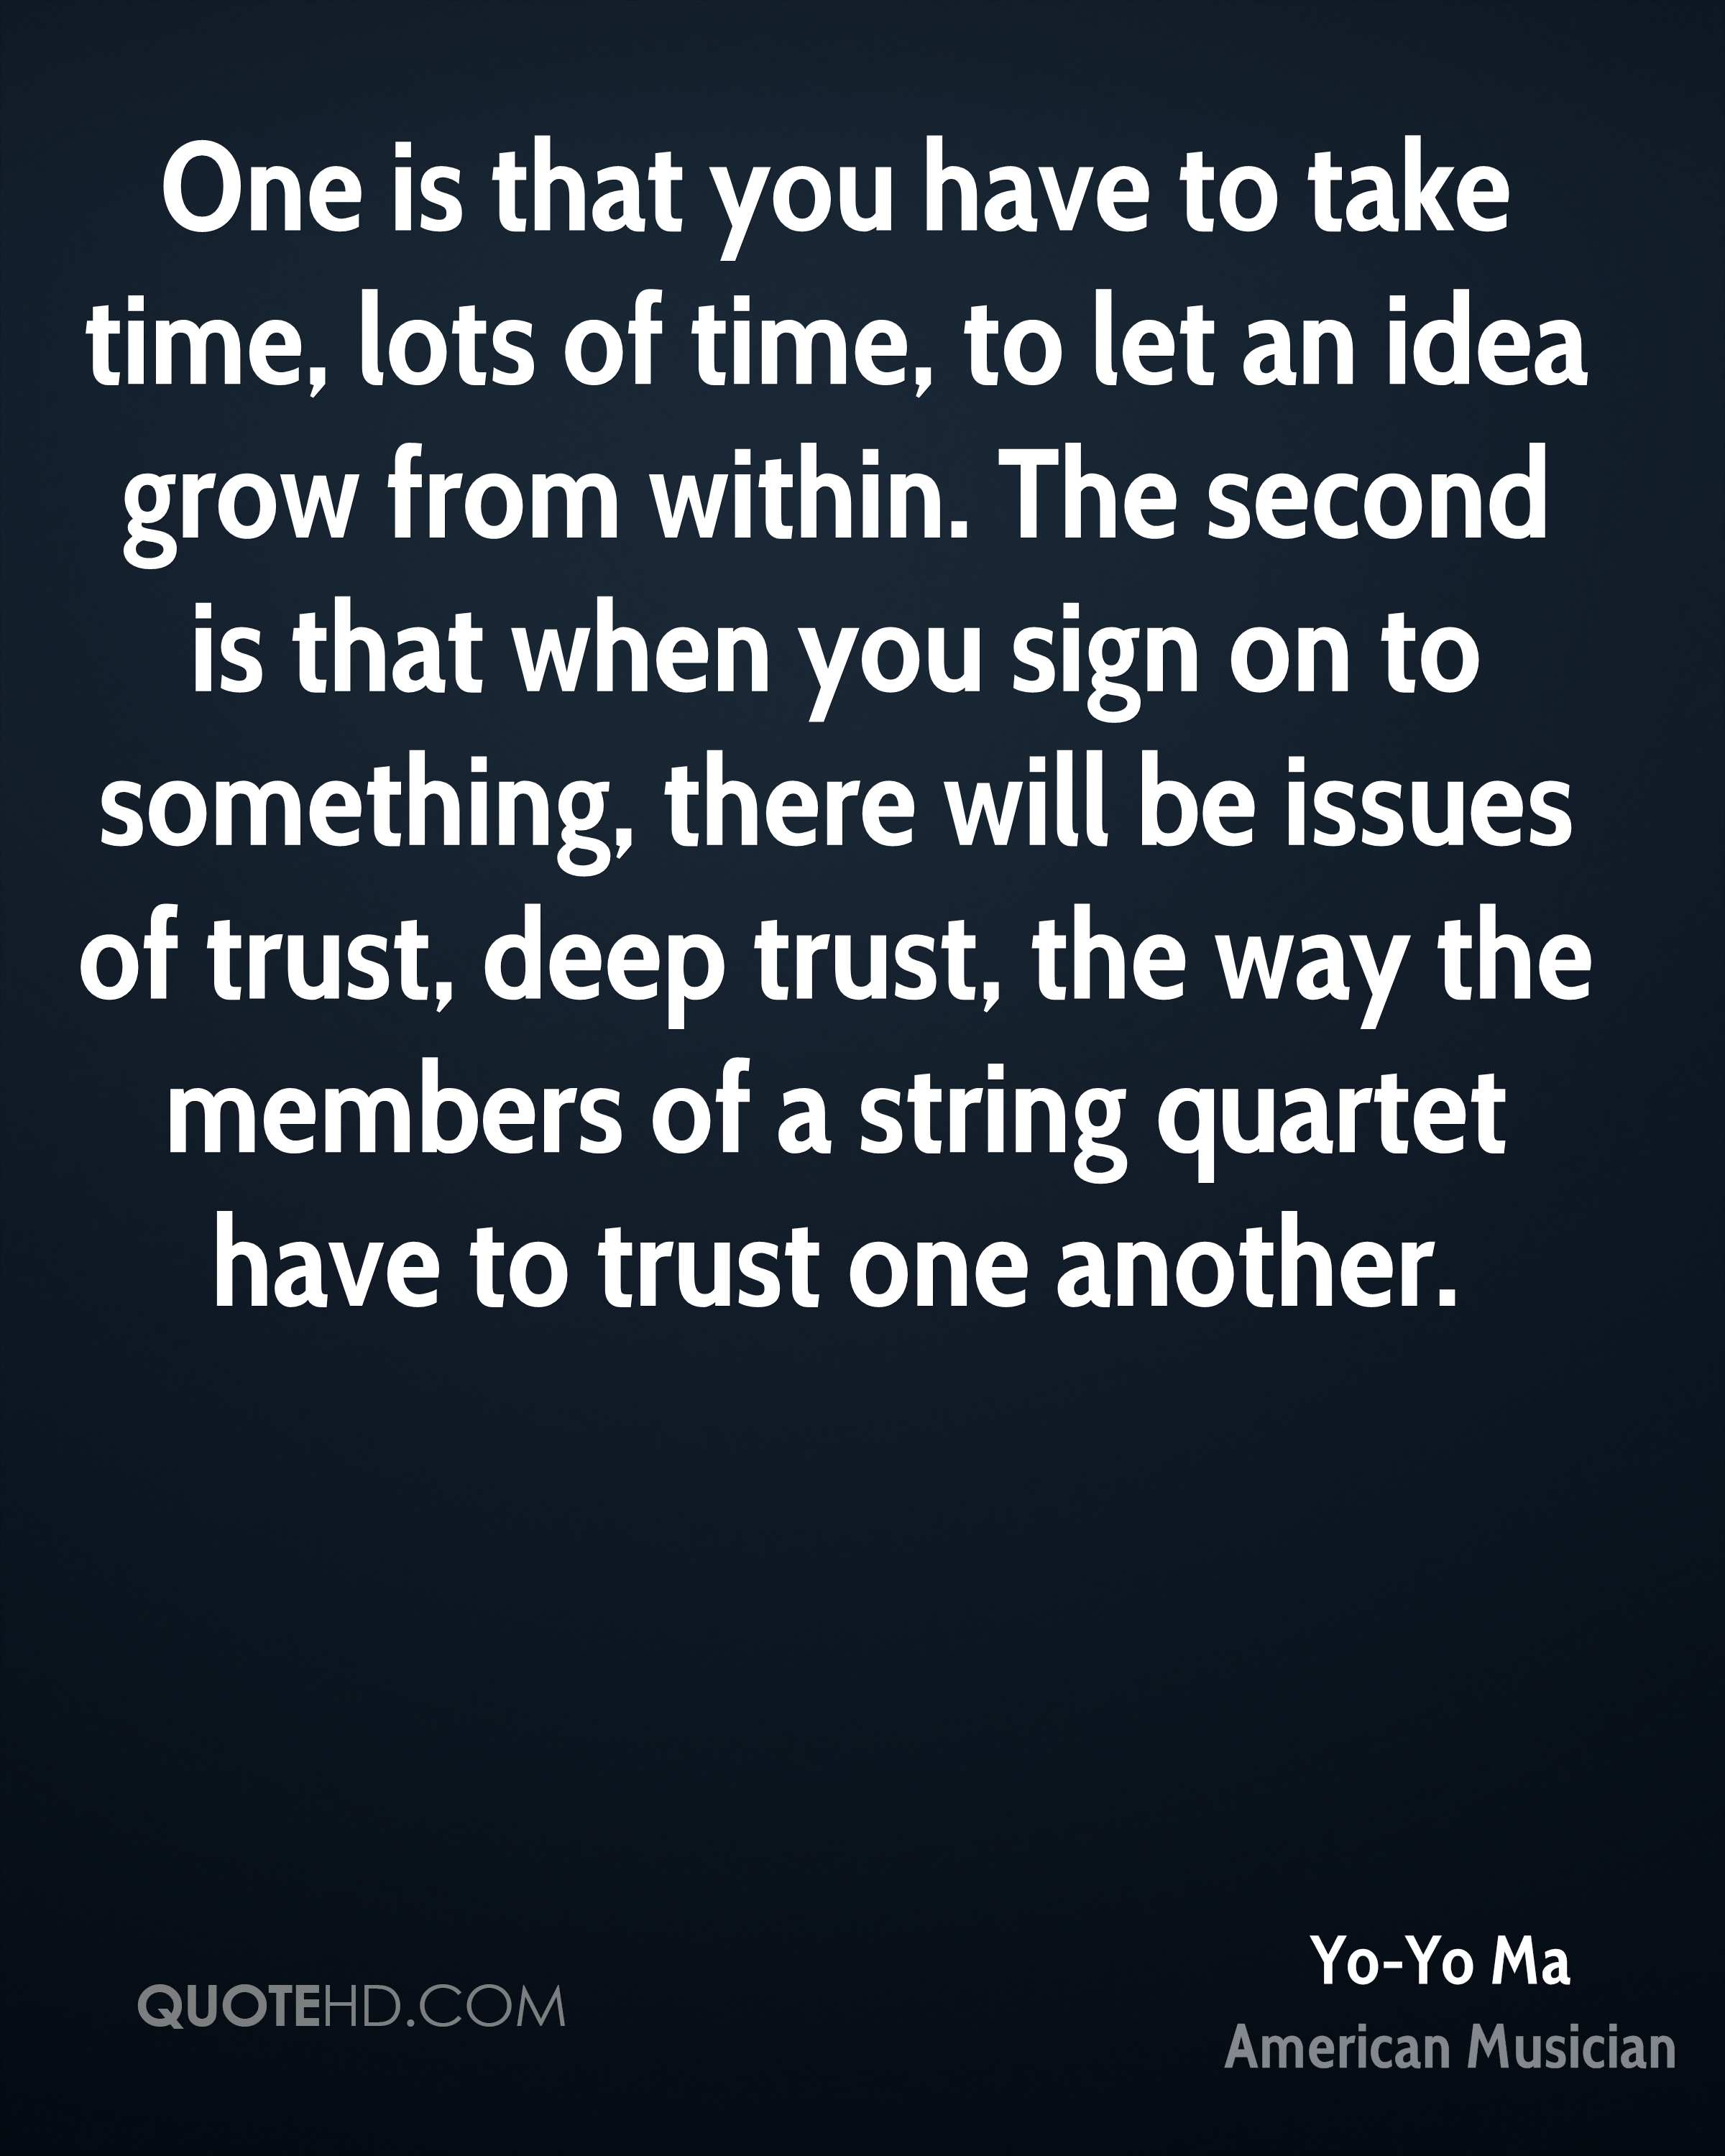 One is that you have to take time, lots of time, to let an idea grow from within. The second is that when you sign on to something, there will be issues of trust, deep trust, the way the members of a string quartet have to trust one another.